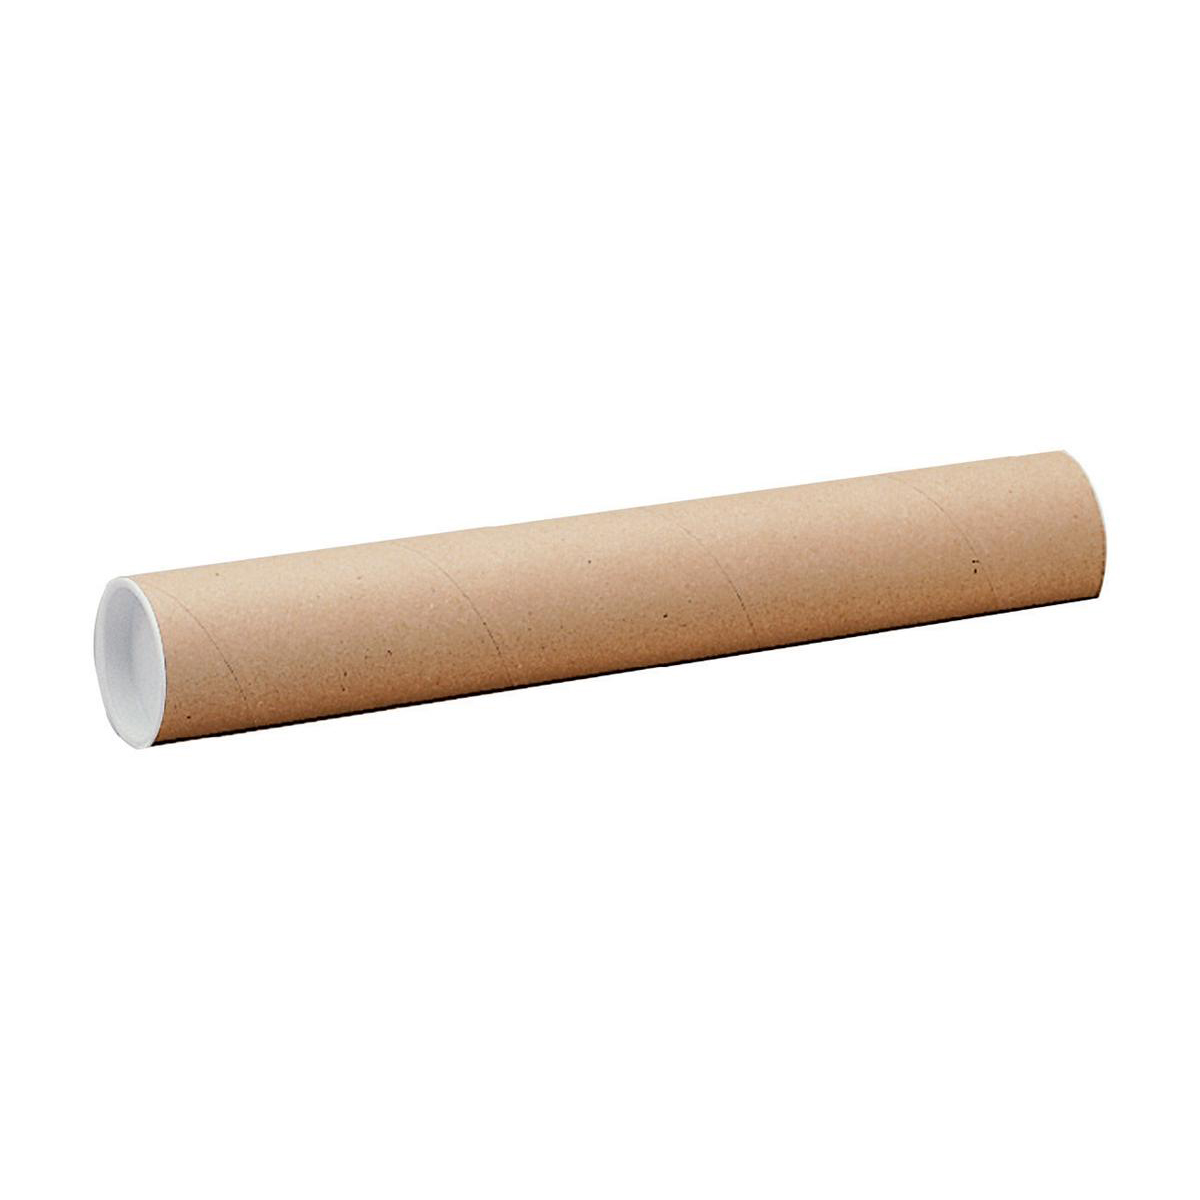 Image for Postal Tube Cardboard with Plastic End CapsA2 L450xDia.50mm [Pack 25]